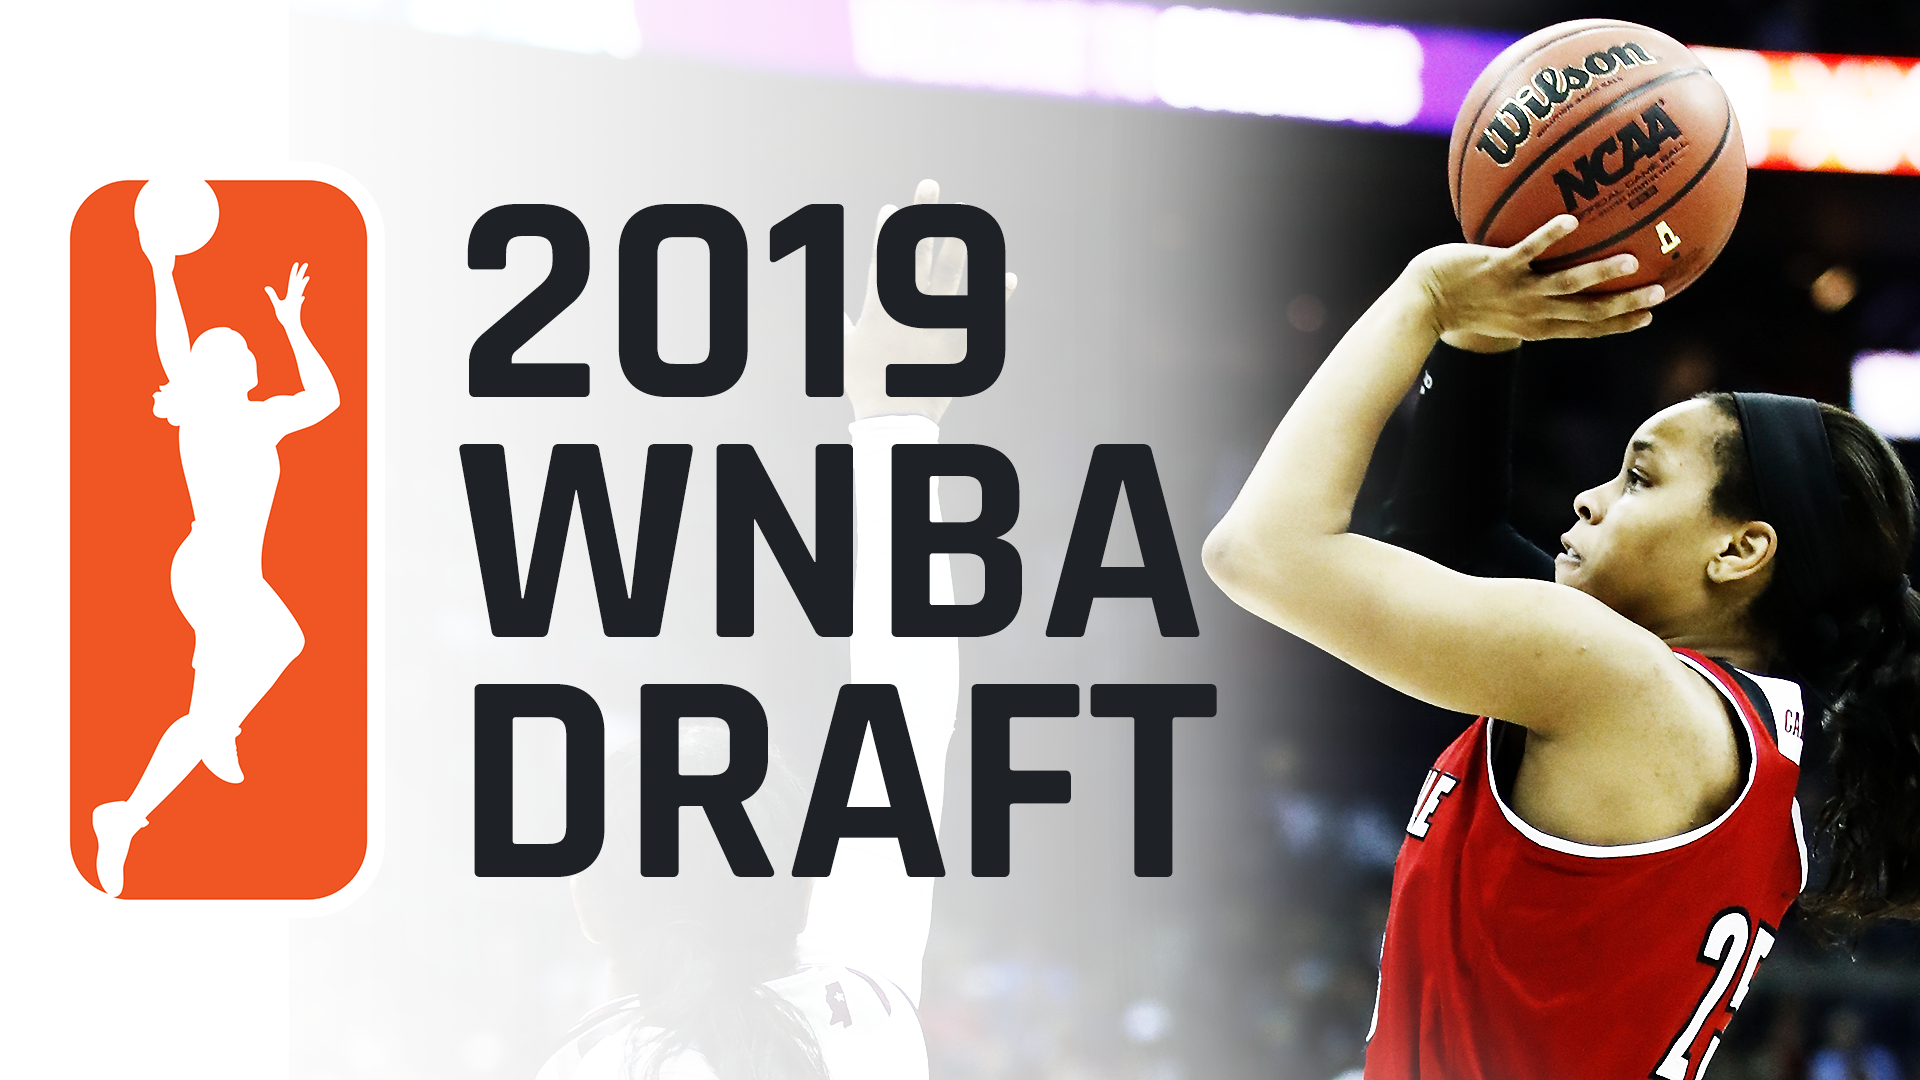 Wnba Draft 2019 Date, Time, Order Of Picks, Top Prospects And How To Watch Live -2097